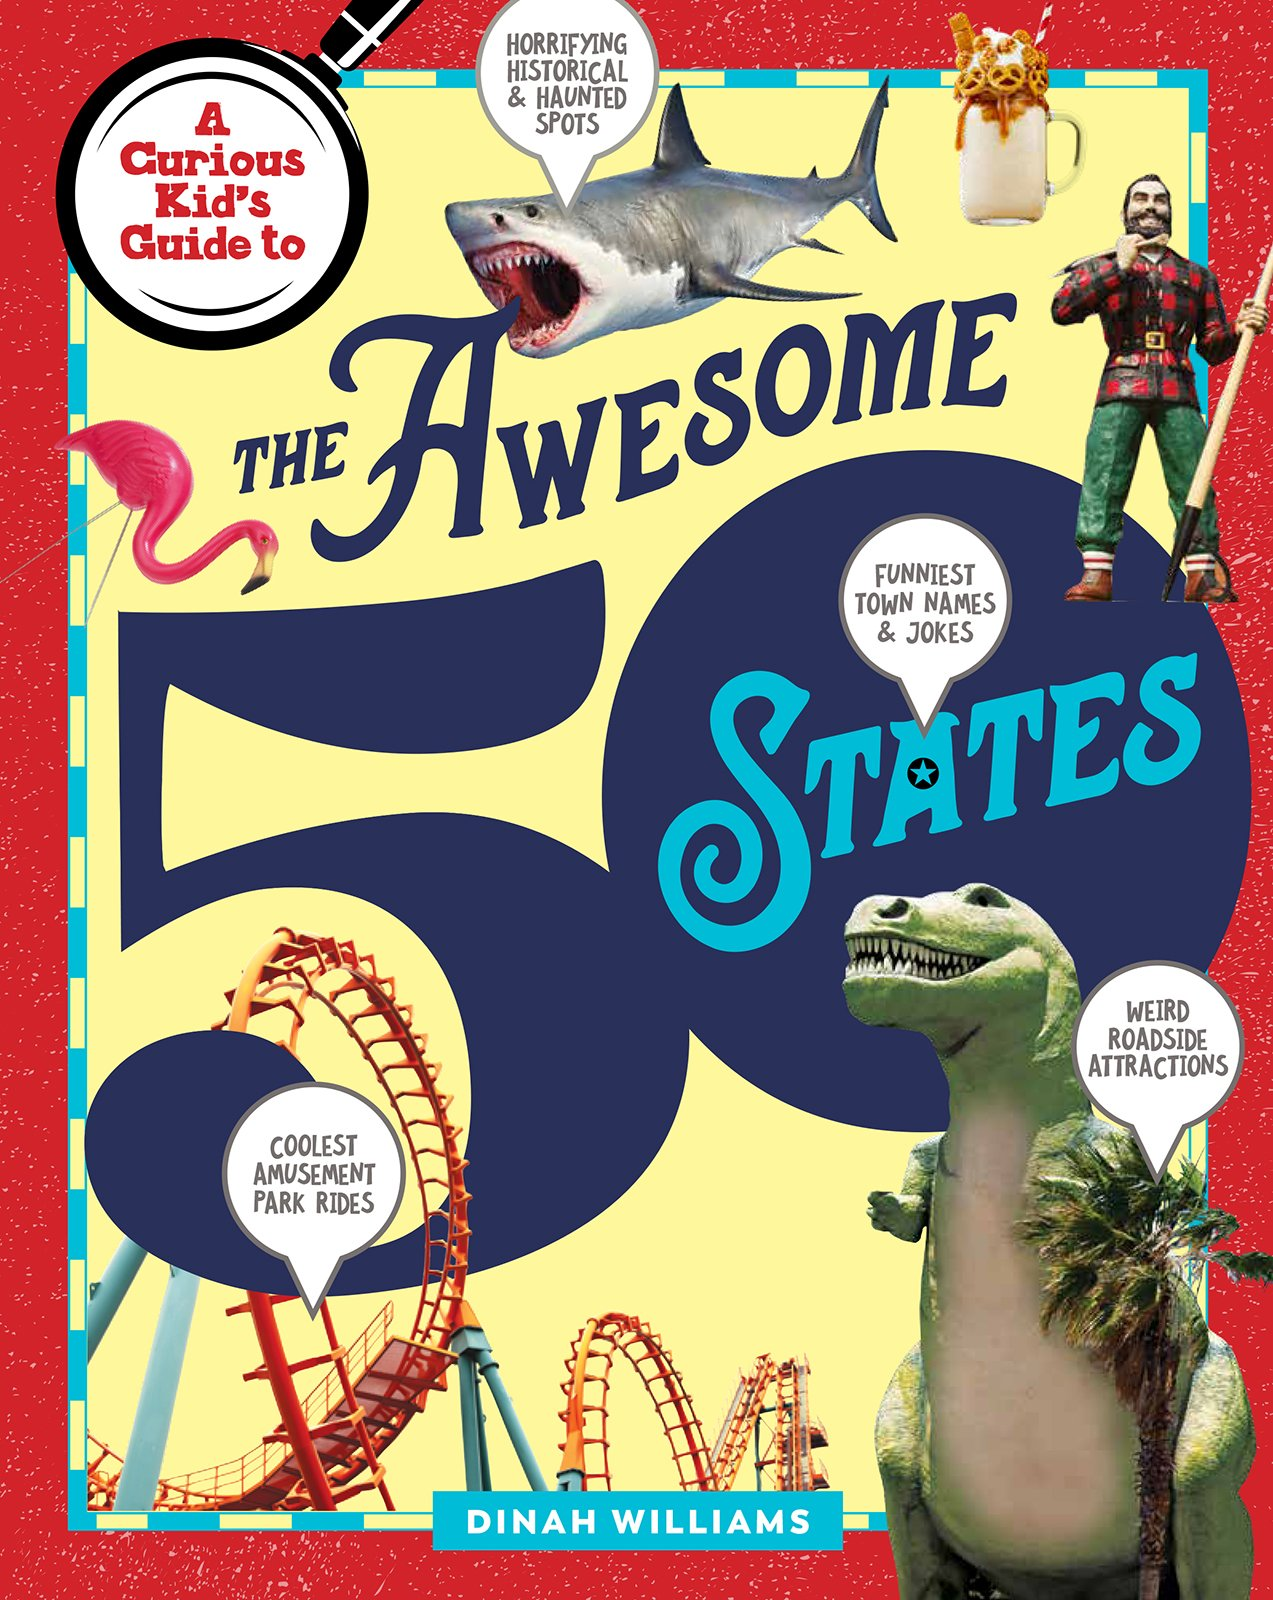 Middle Grade Non-fiction – A Curious Kid's Guide To The Awesome 50 States